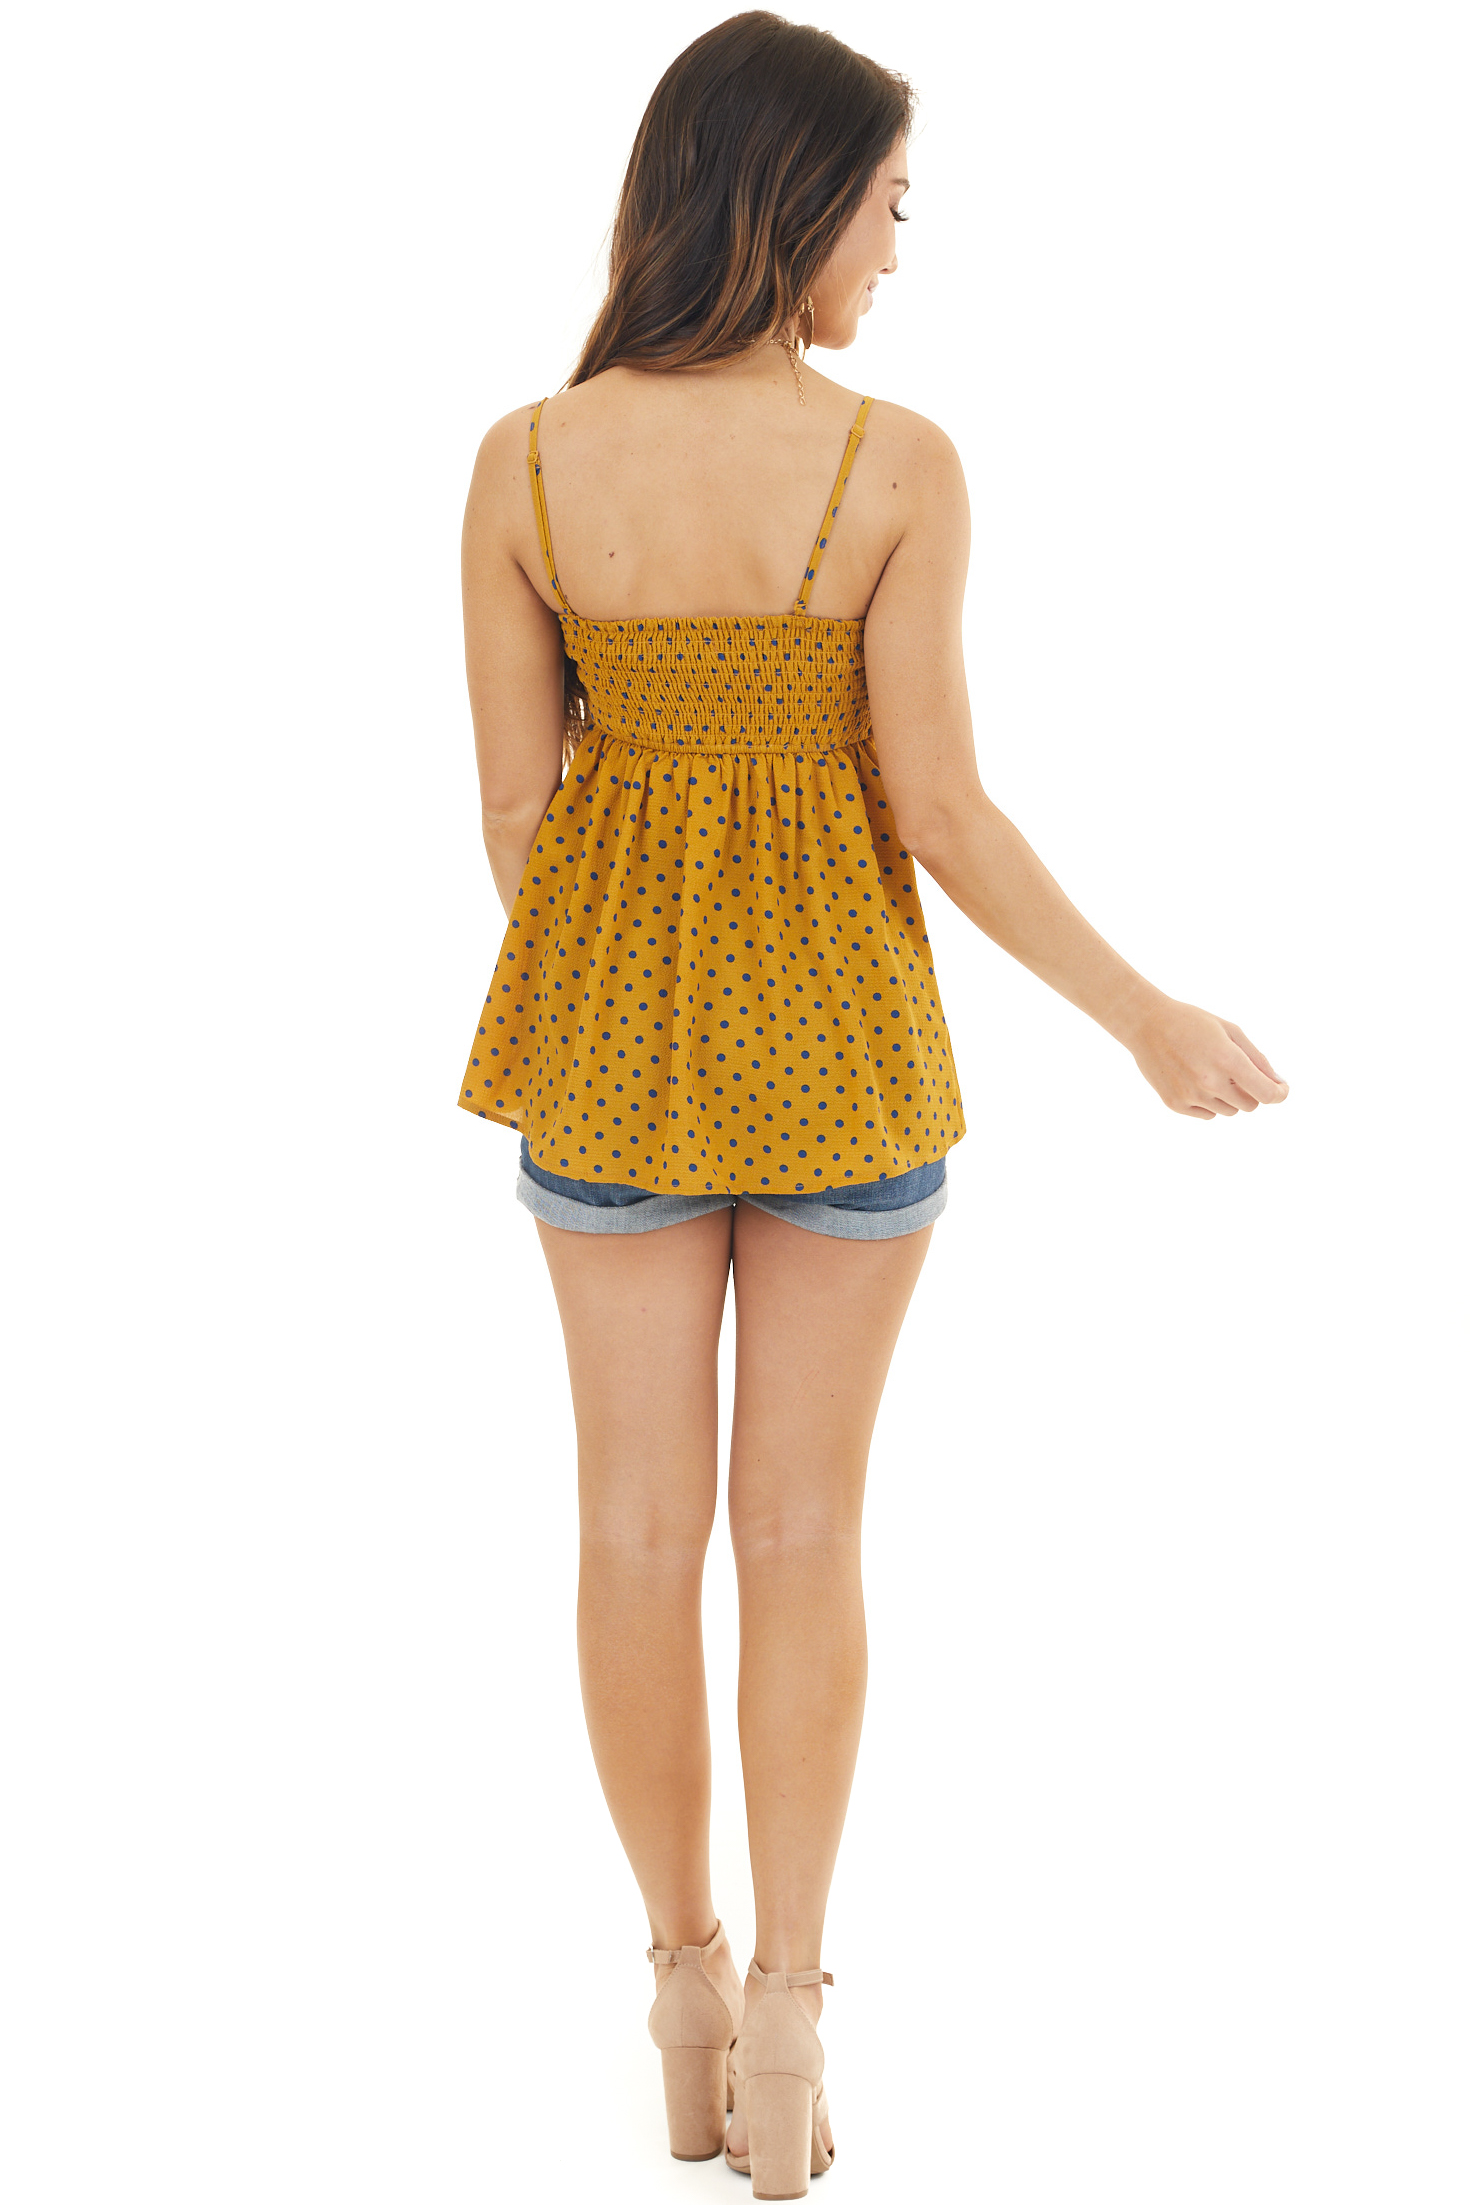 Mustard and Navy Polka Dot Spaghetti Strap Tank with Tie